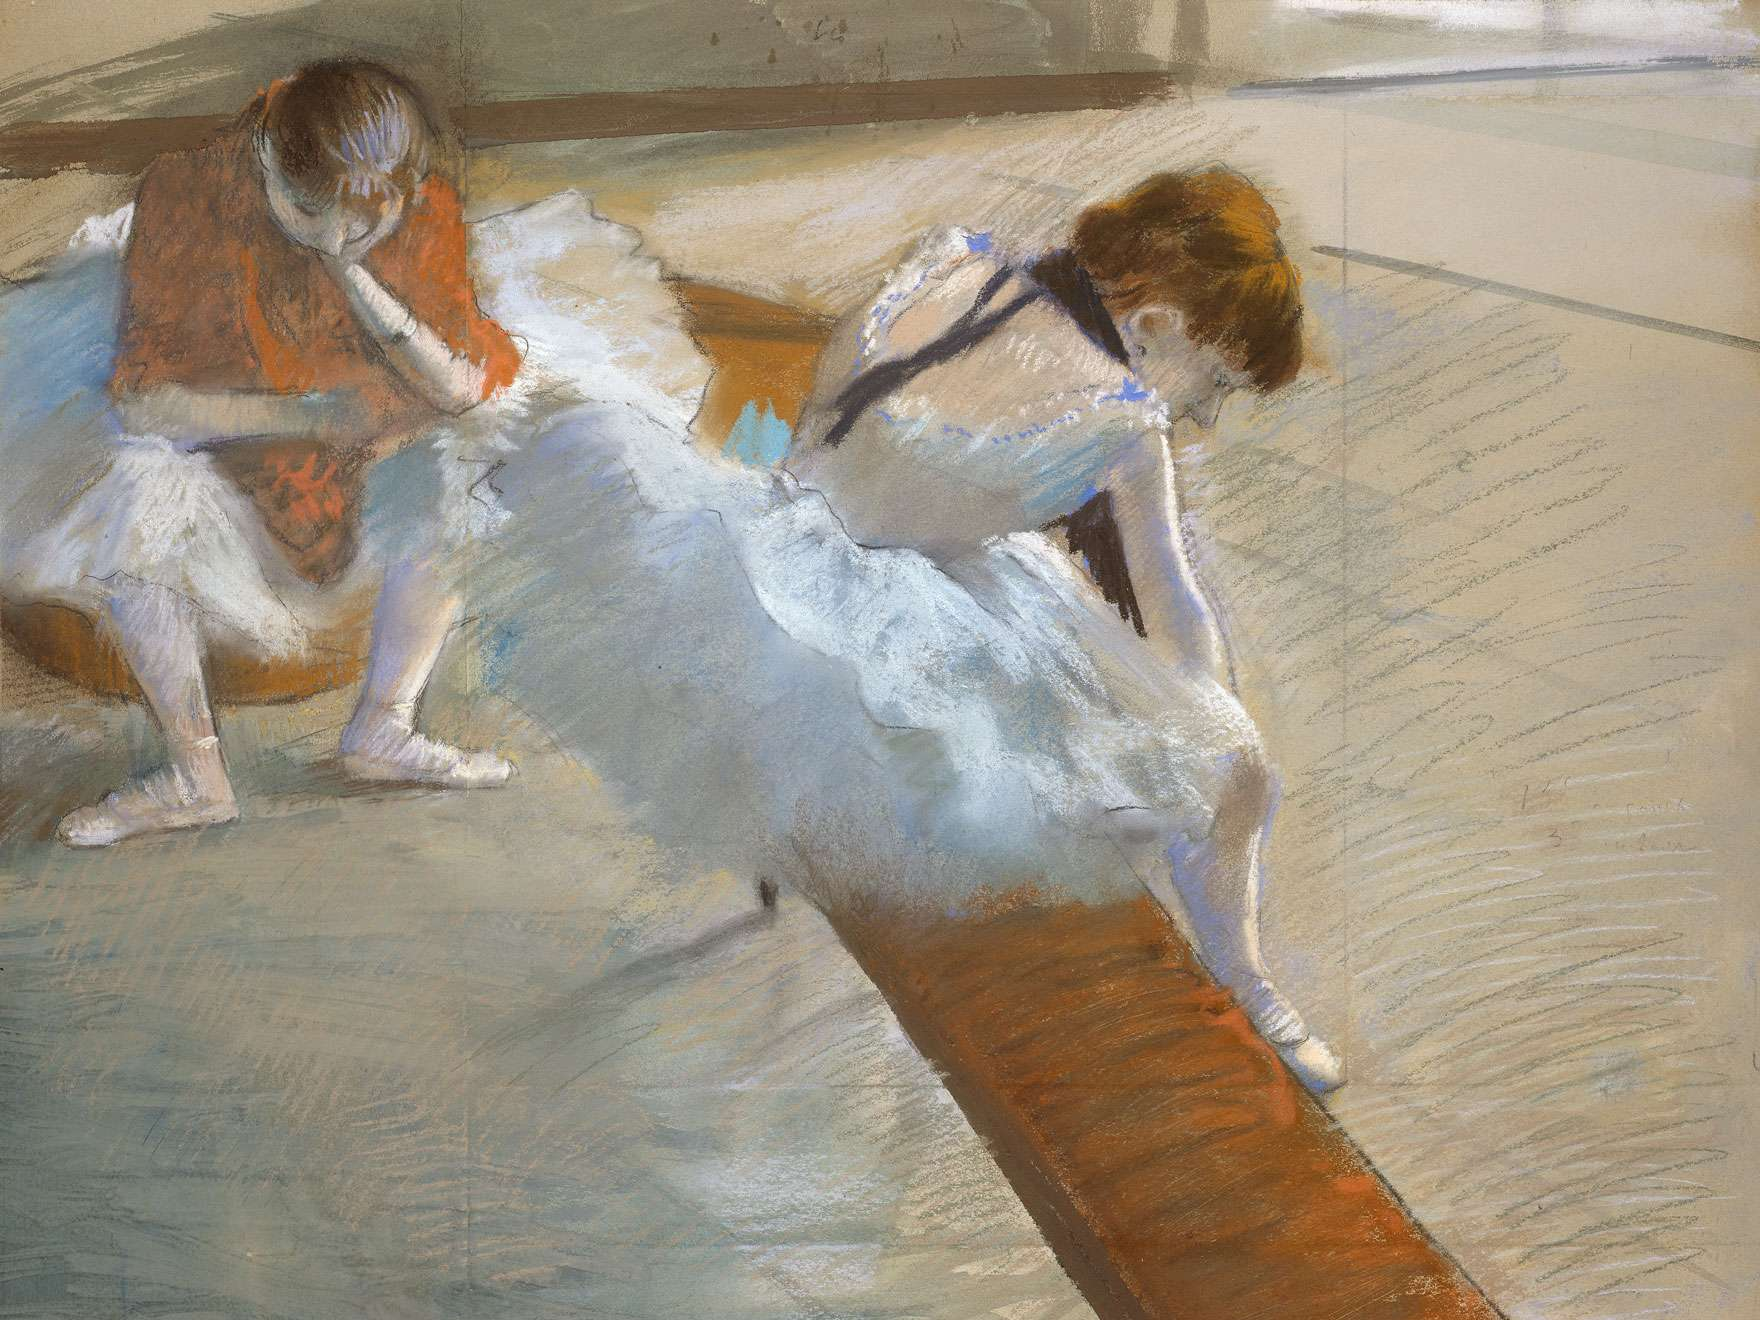 Edgar Degas's pastel on paper drawing, Dancers Resting, 1881–85